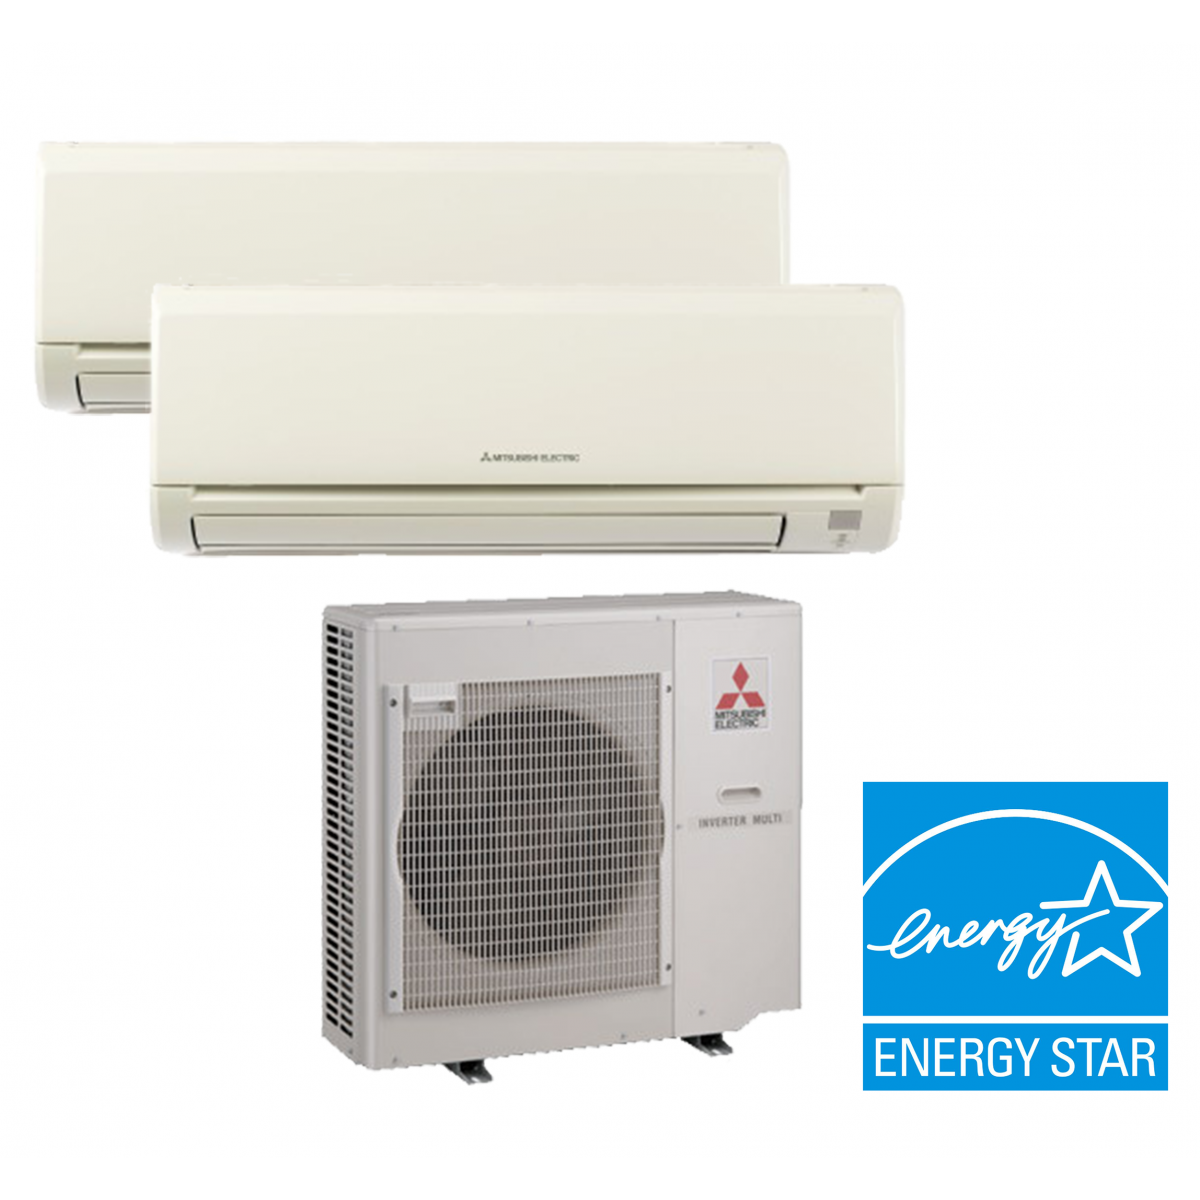 Mitsubishi Mxz 2b20na 2 Zone Heat Pump With Two 2 9 000: ductless ac